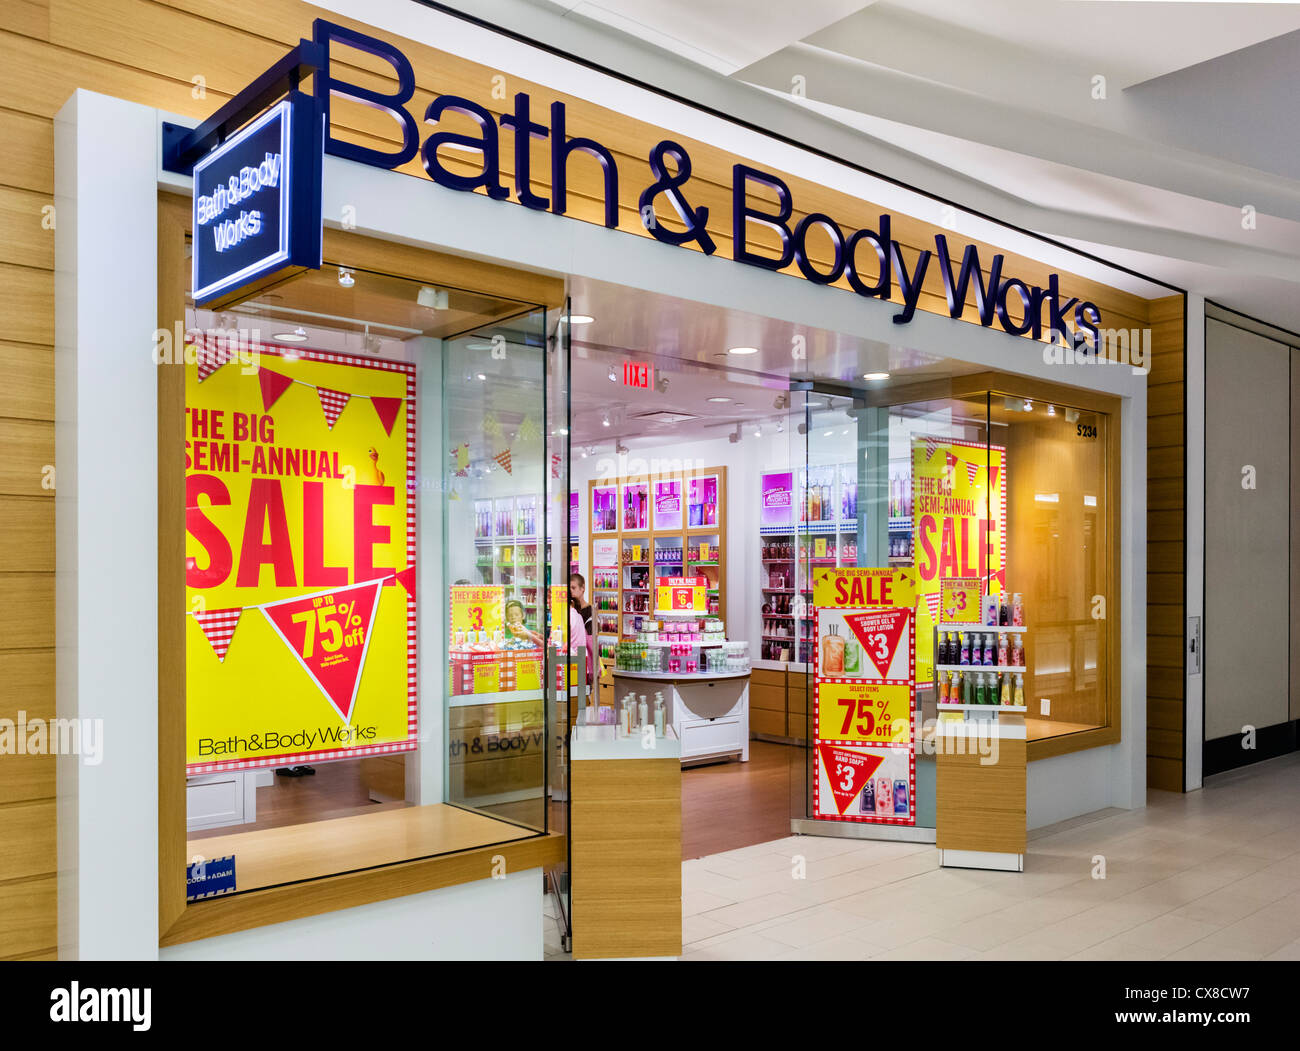 Bath Body Works Store In Stock Photos And The Mall Of America Bloomington Minneapolis Minnesota